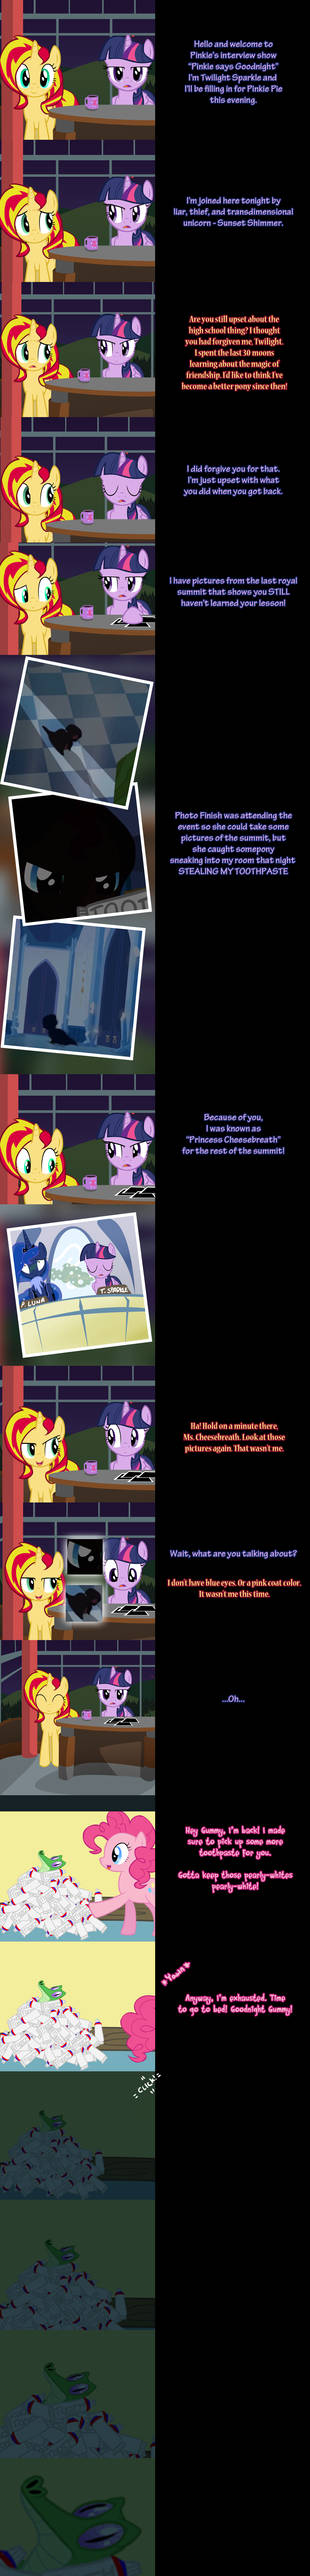 Pinkie Says Goodnight - Twilight Sunset